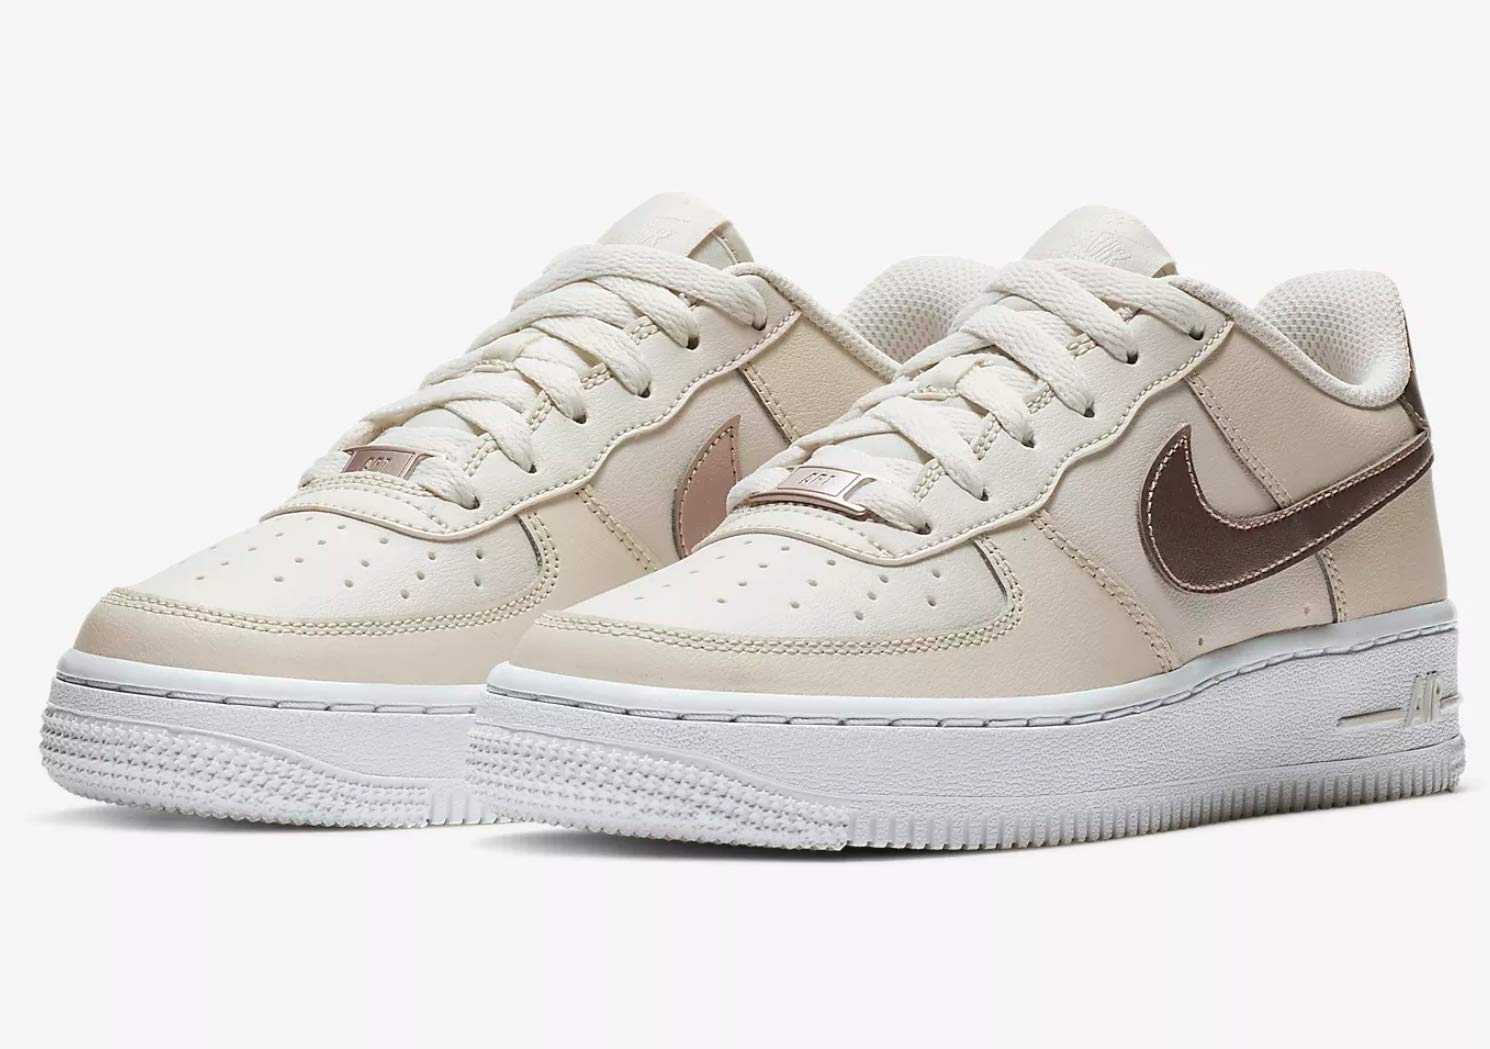 meilleures baskets f5489 923c5 NIKE Air Force 1 (GS), Chaussures de Basketball Fille